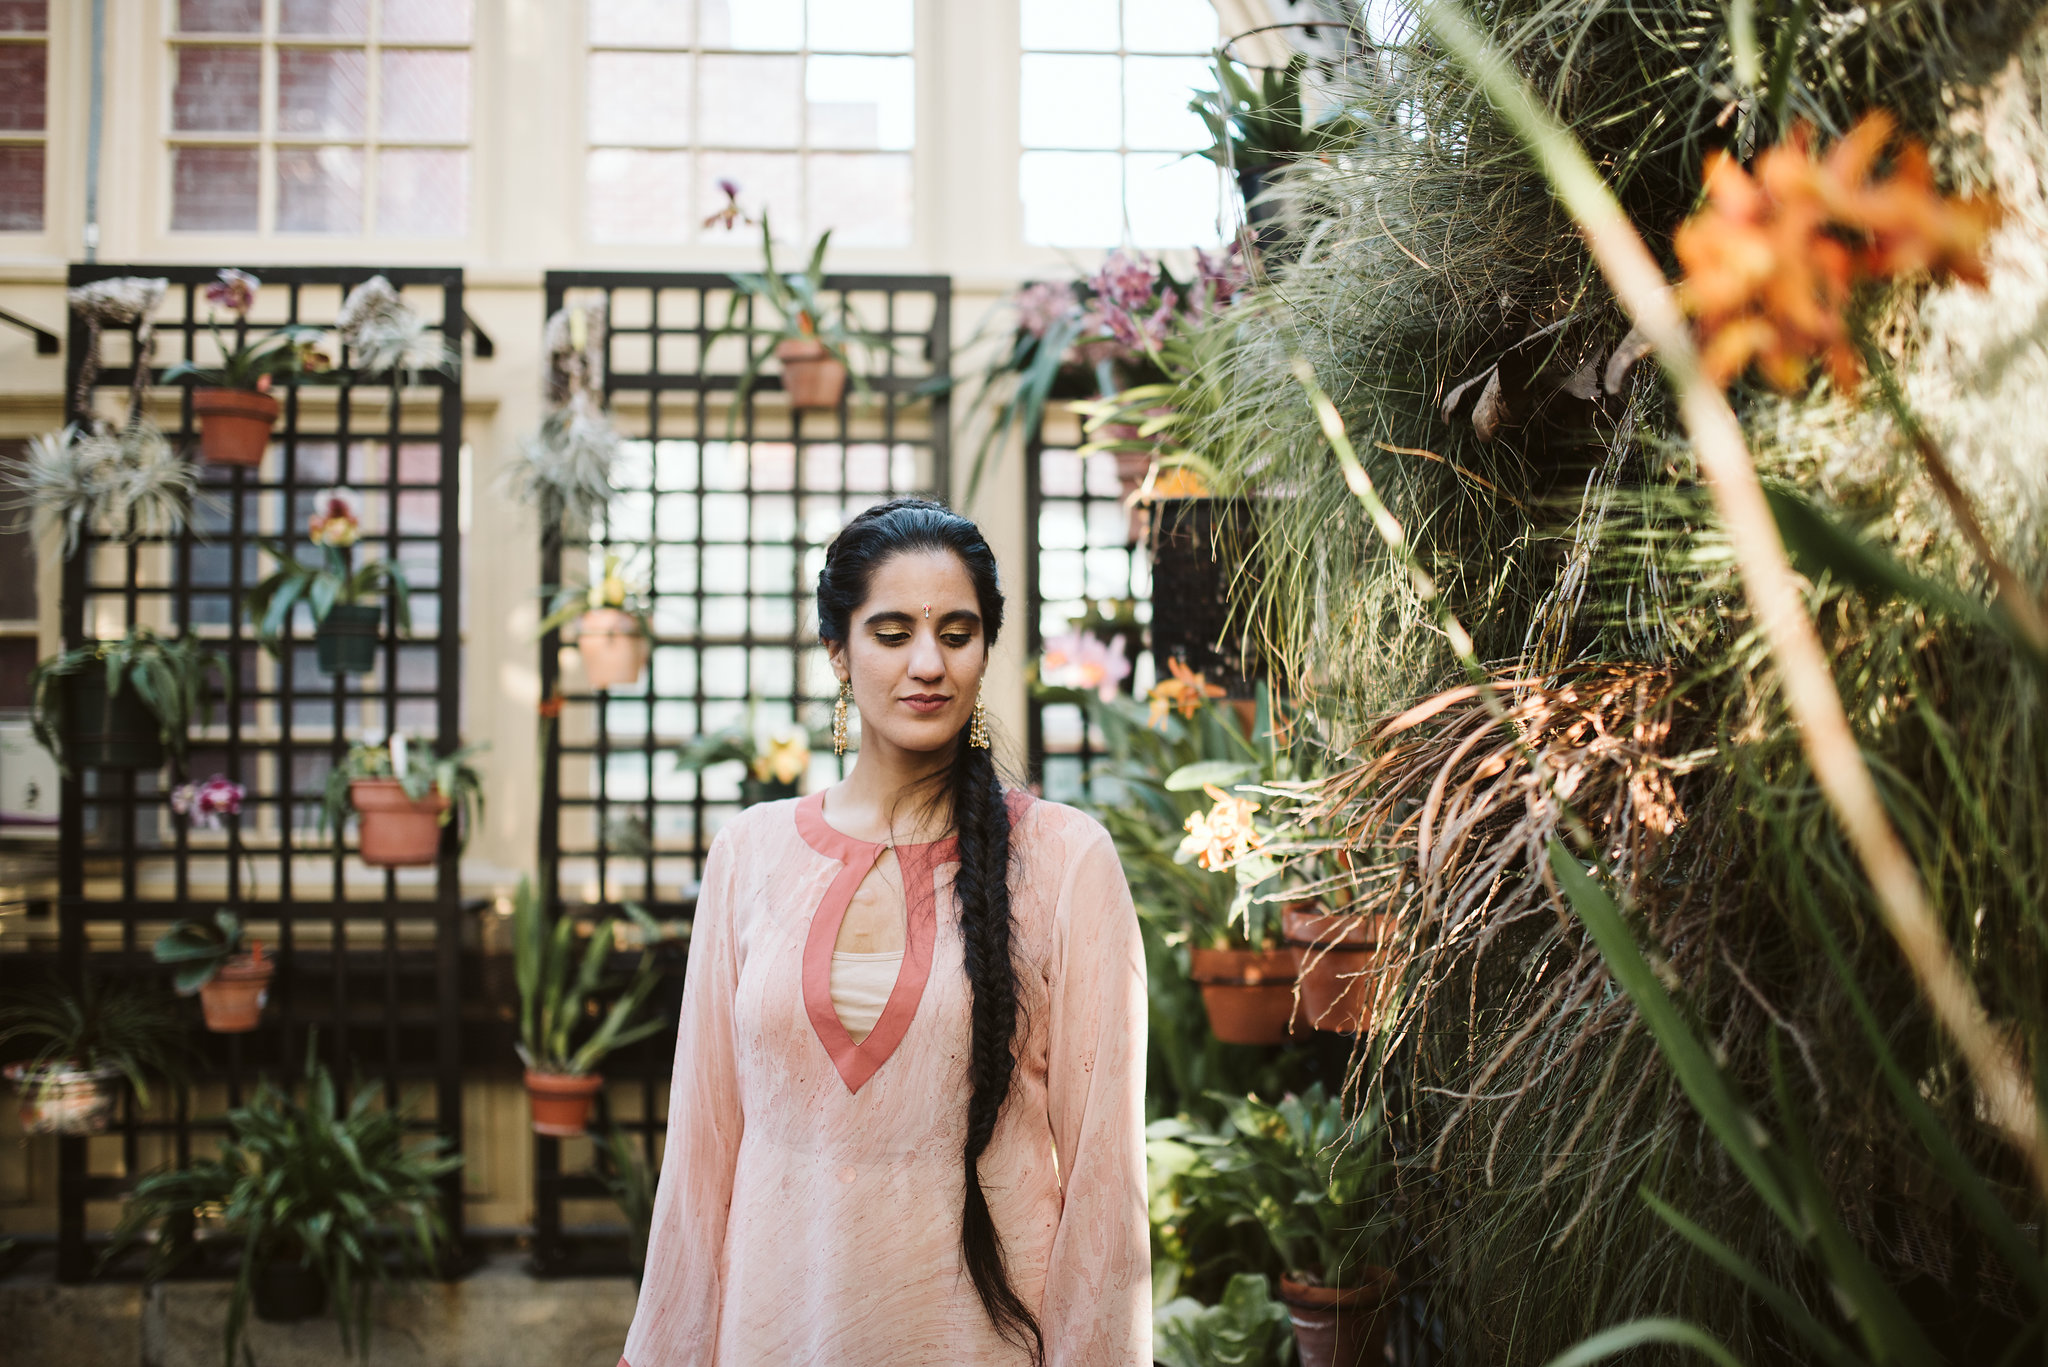 Elopement, Weekday Wedding, Baltimore, Rawlings Conservatory, Greenhouse, Maryland Wedding Photographer, Indian American, Nature, Romantic, Garden, Pink Sari, Bride Portrait, Bridal Hair, Braid